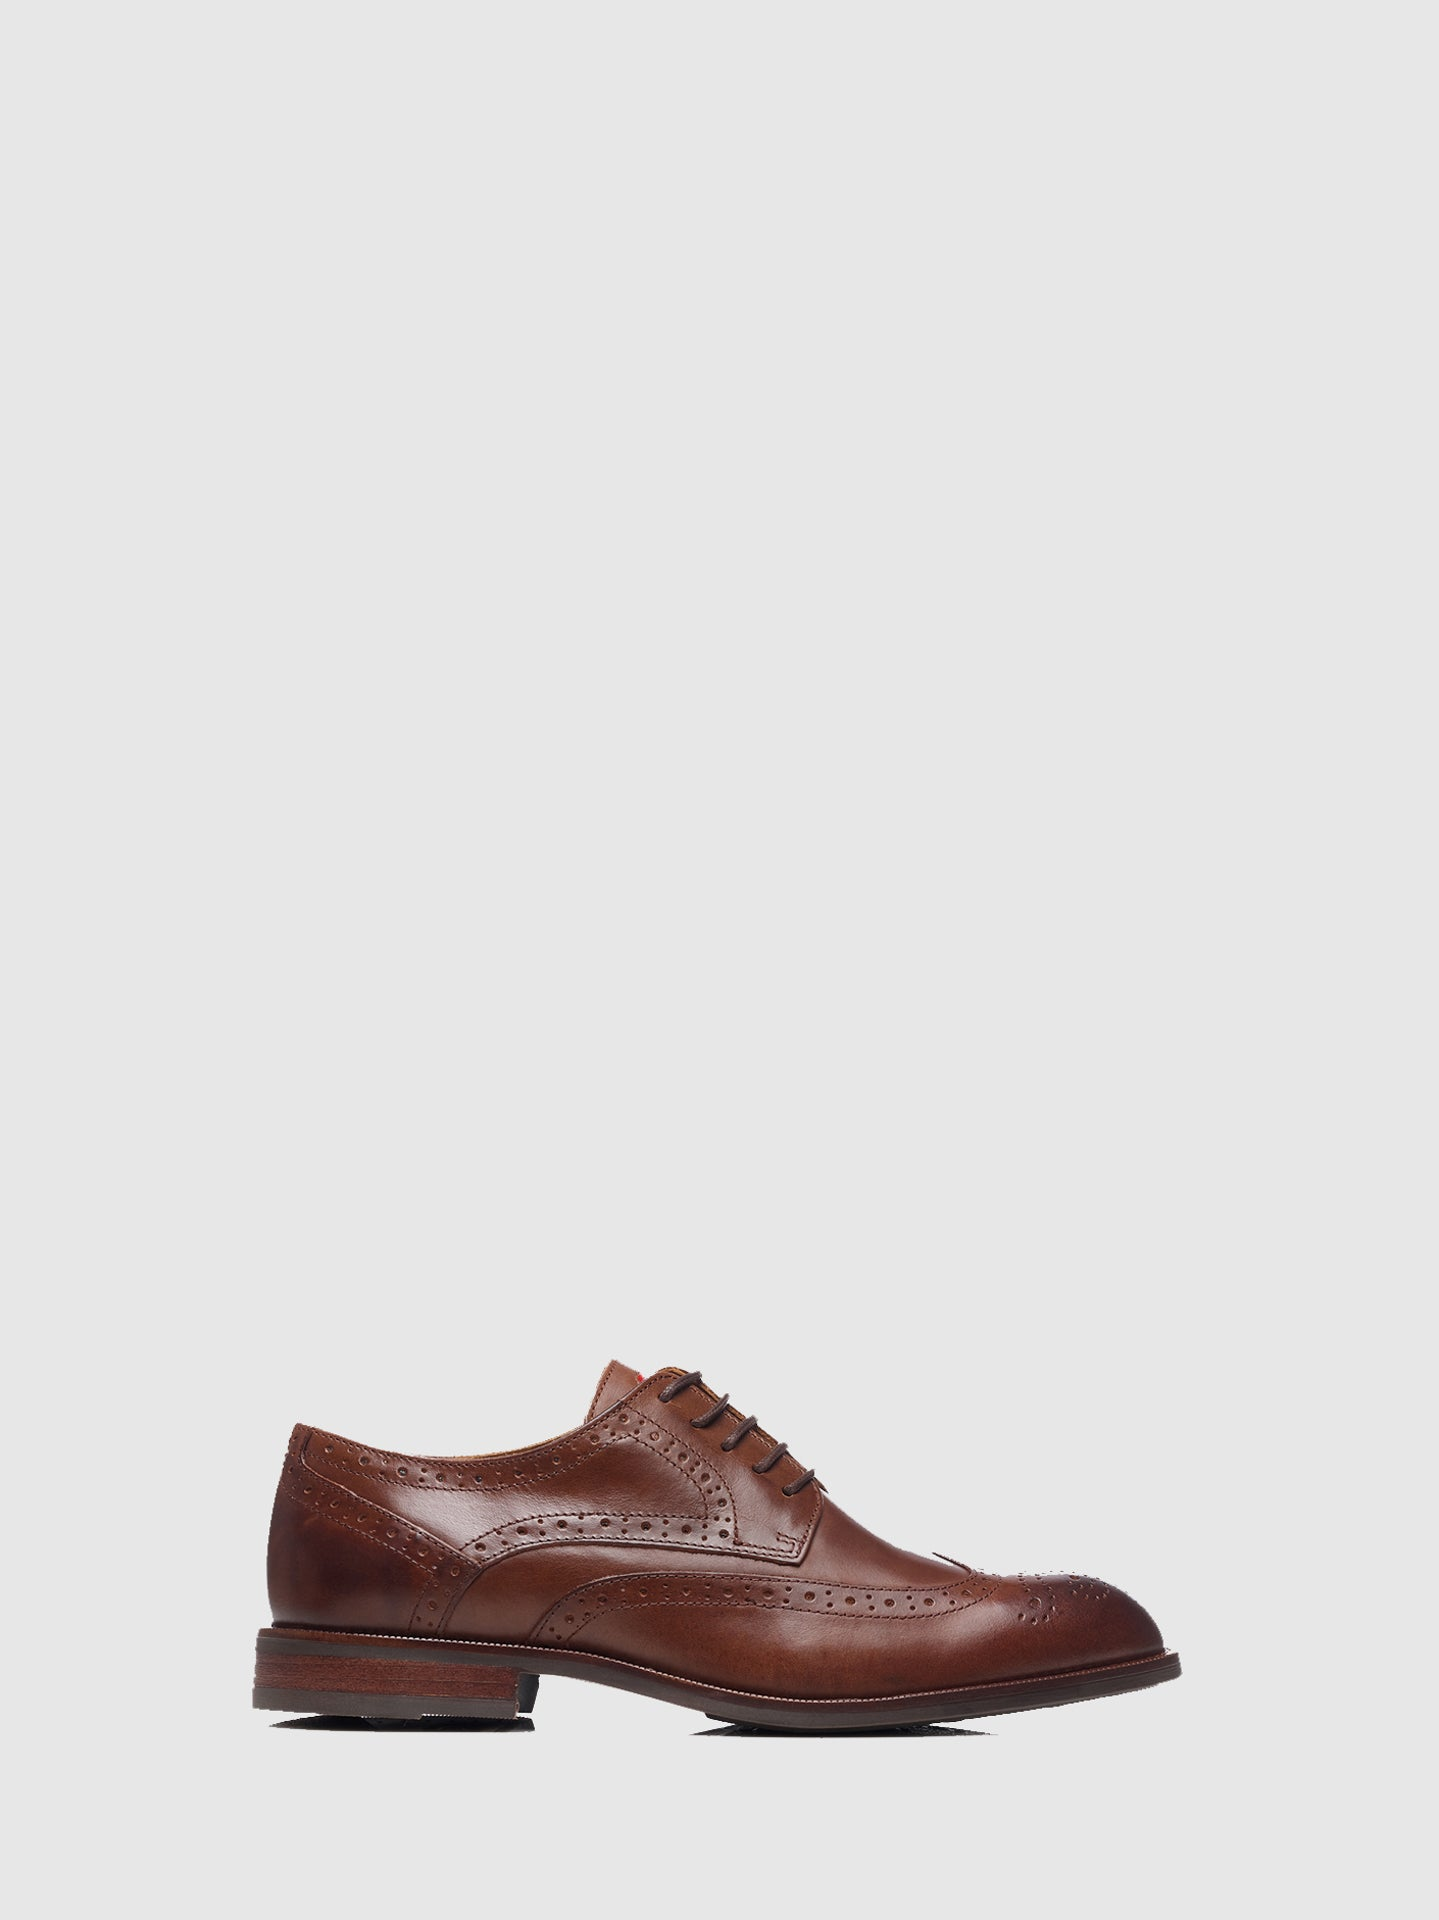 Nobrand Brown Lace-up Shoes